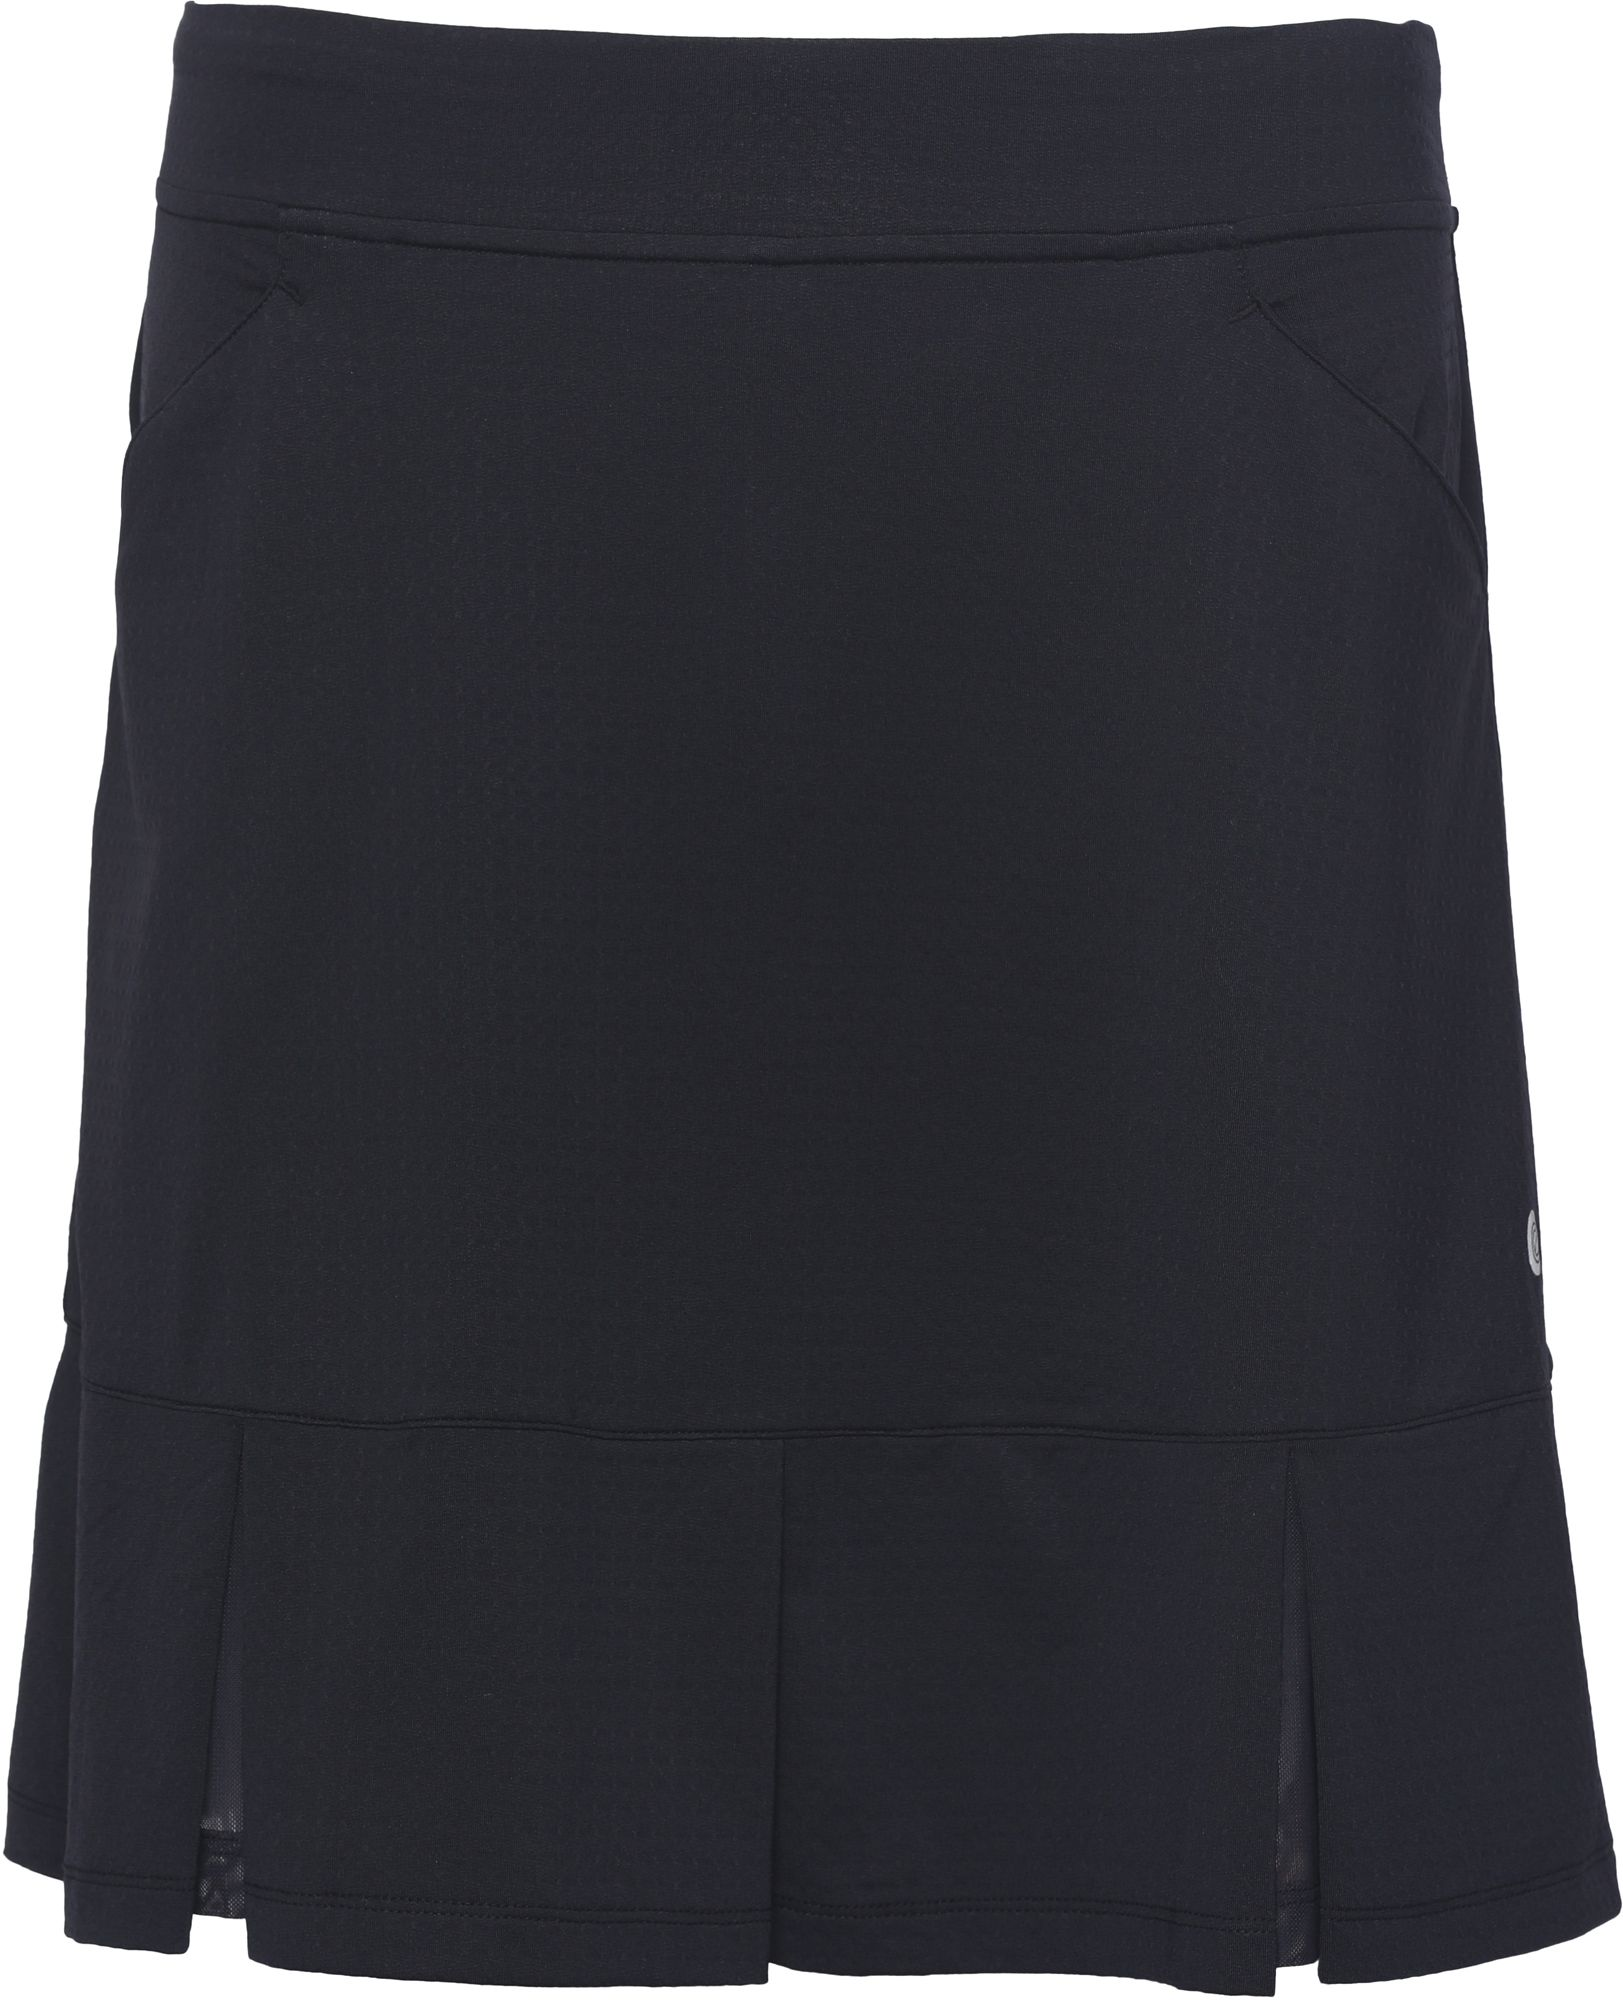 Bette /& Court Womens Twirl Pull On Skirt with Pockets and Mesh Box Pleats